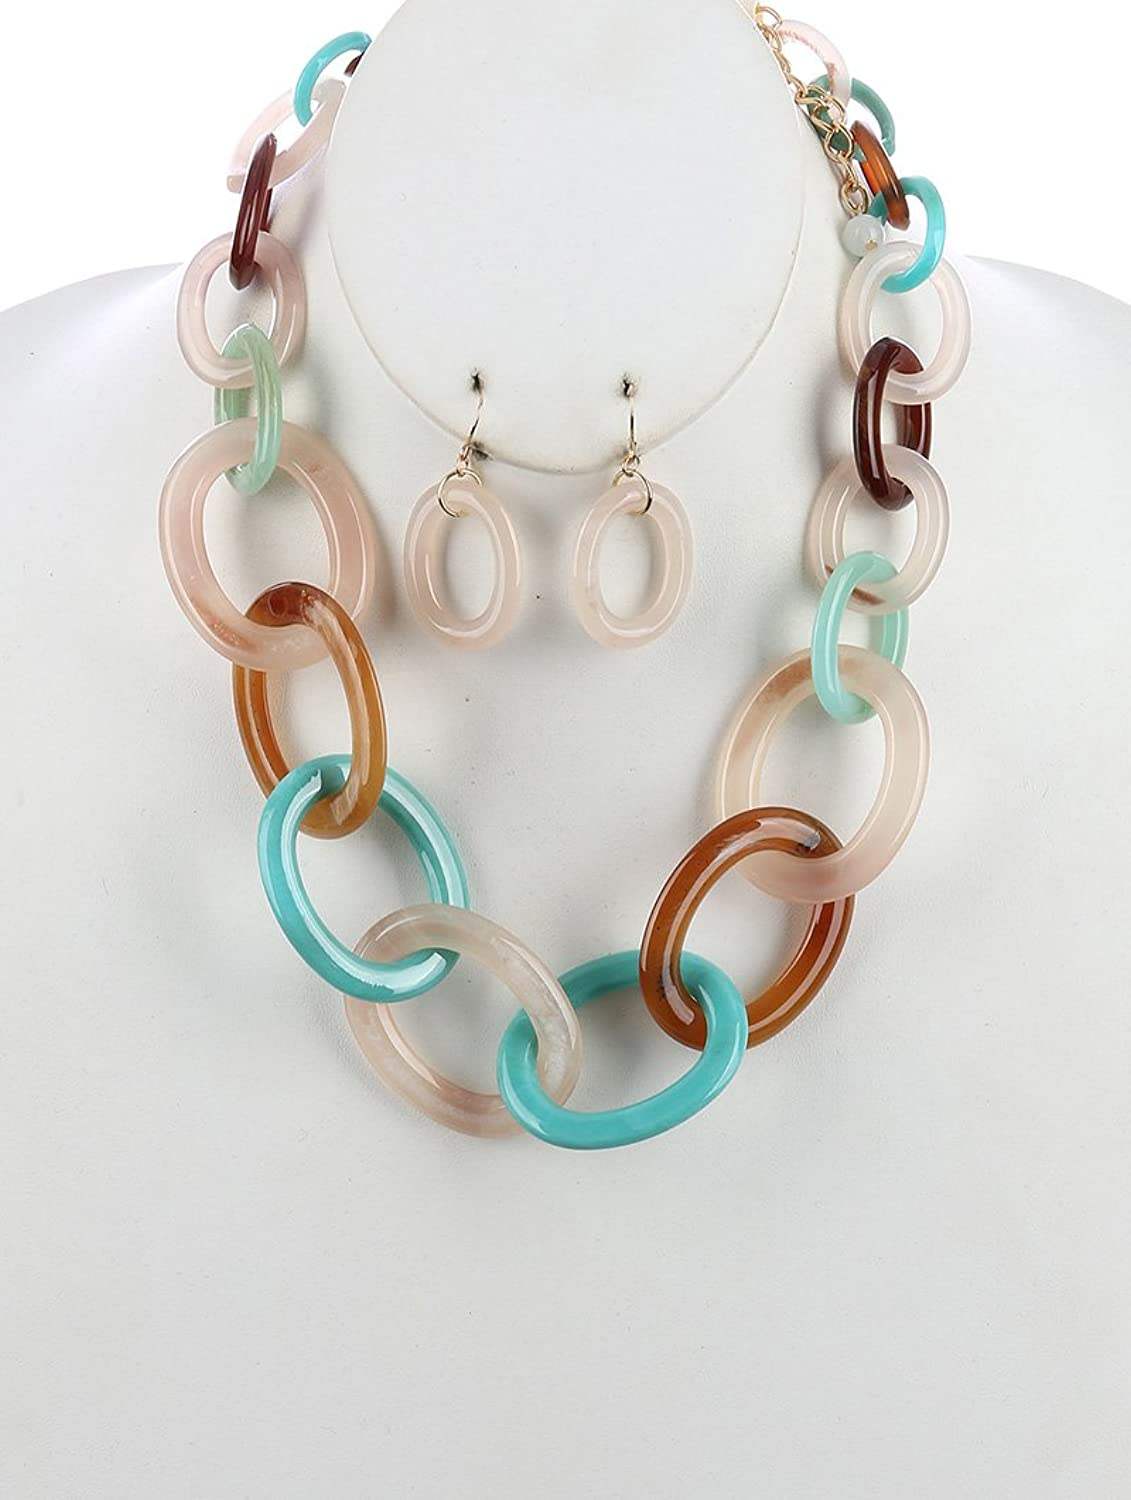 Multi chain lucite chunky link necklace and earring set Fashion Jewelry FancyCharm